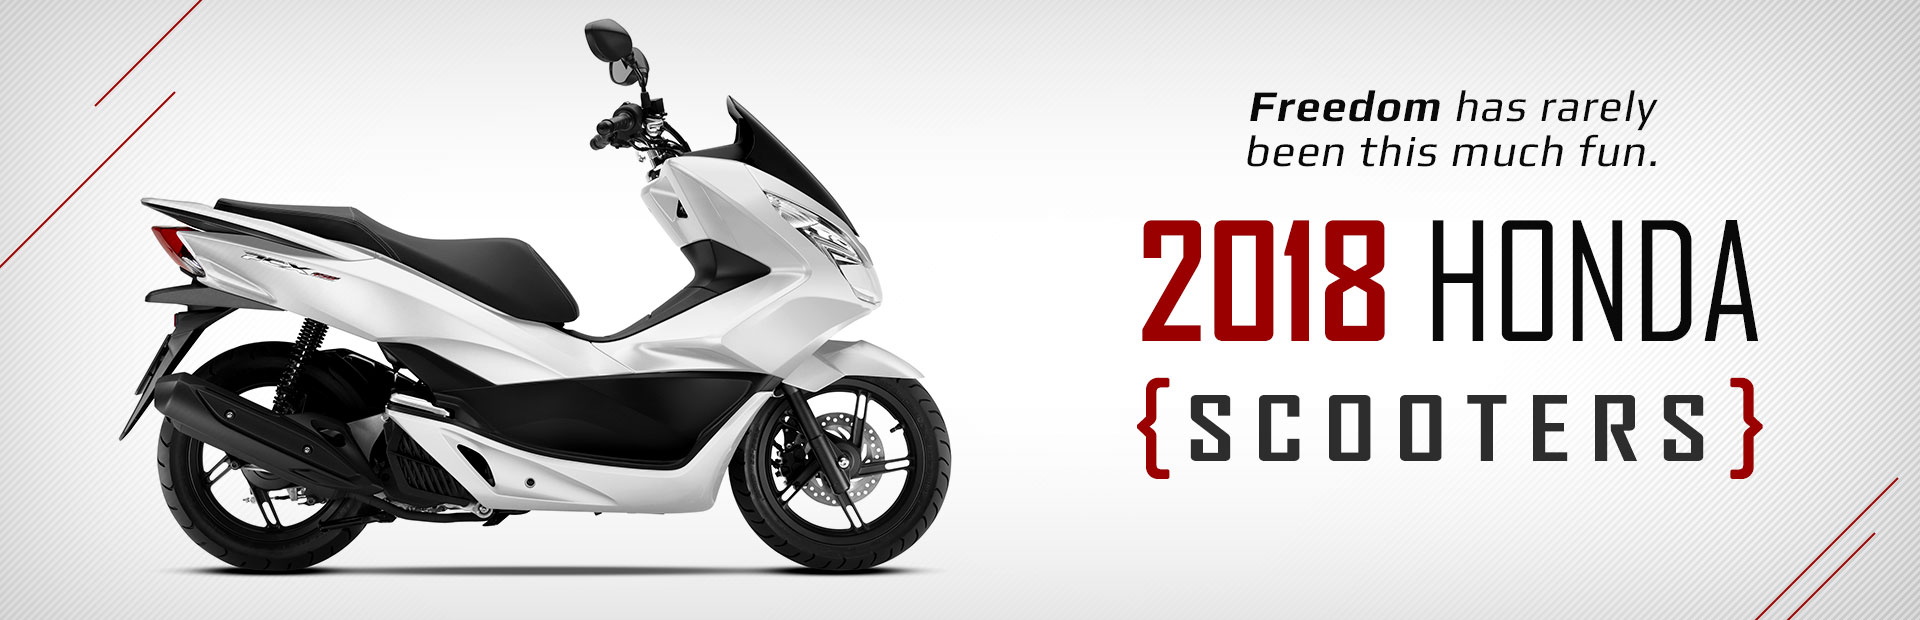 2018 Honda Scooters: Click here to view the models.